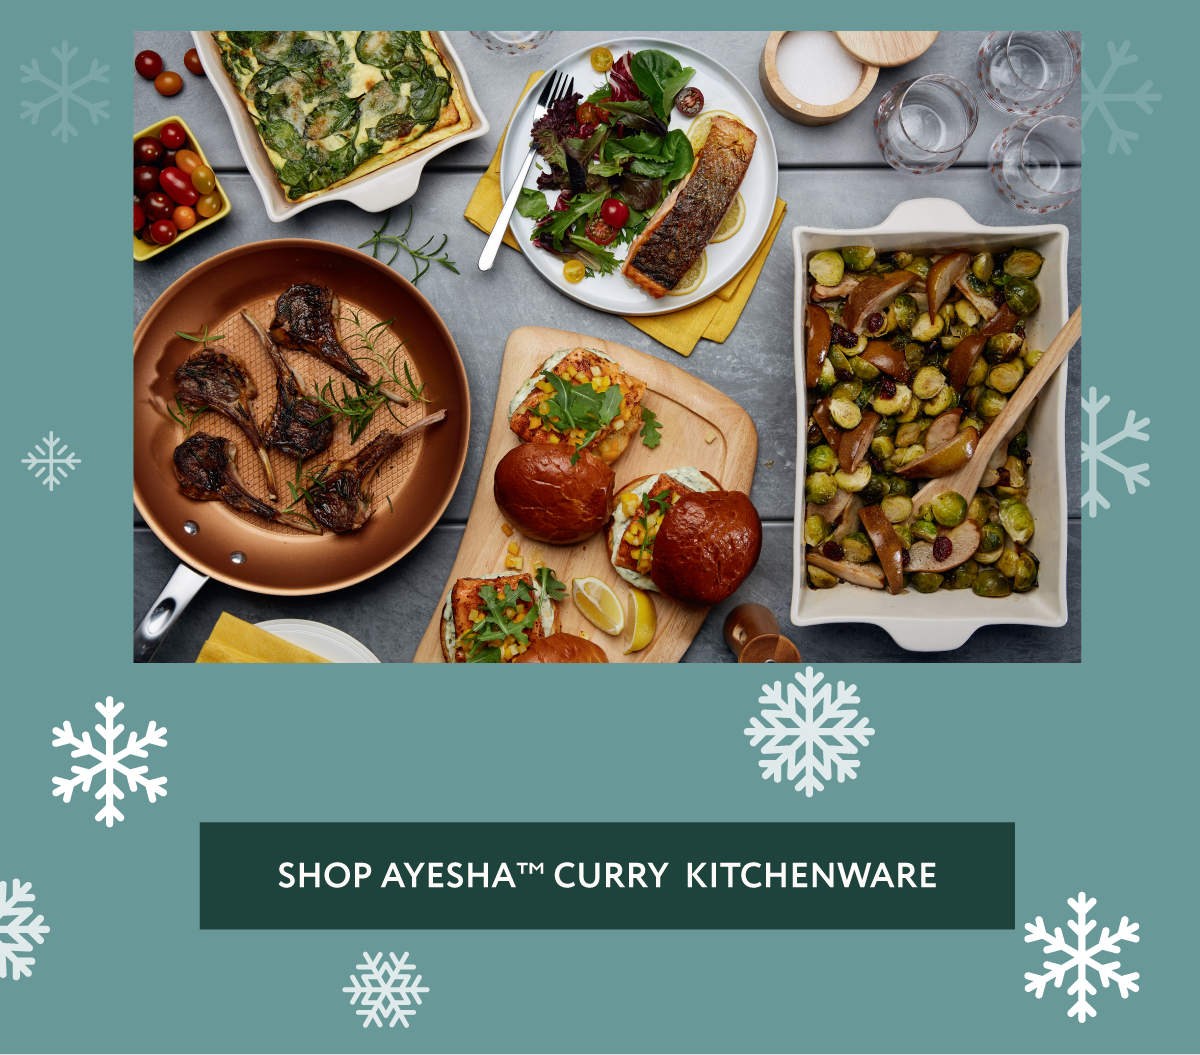 Shop Ayesha™ Curry Kitchenware